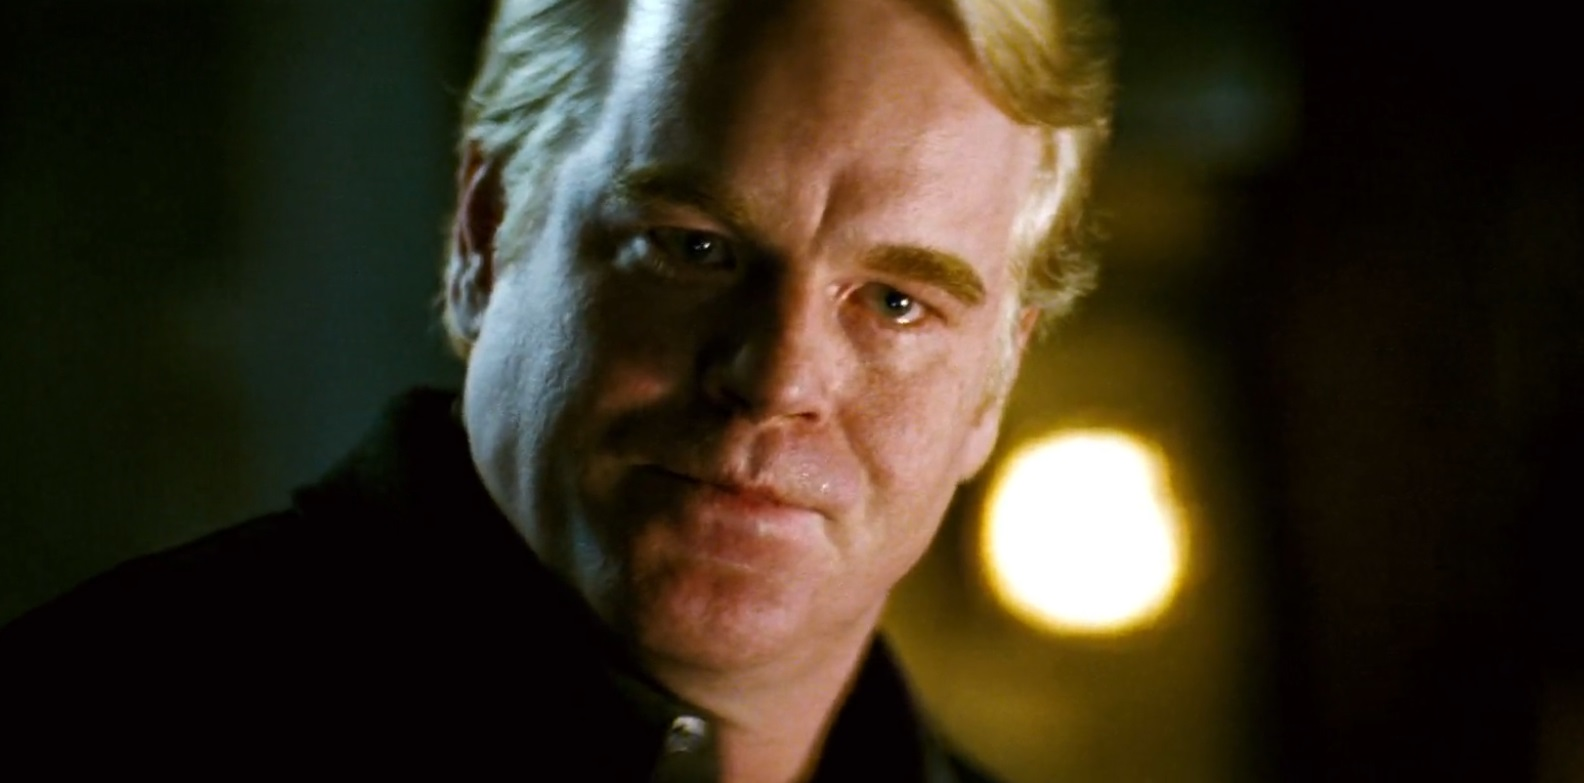 Philip Seymour Hoffman as Owen Davian in Mission: Impossible III (2006)